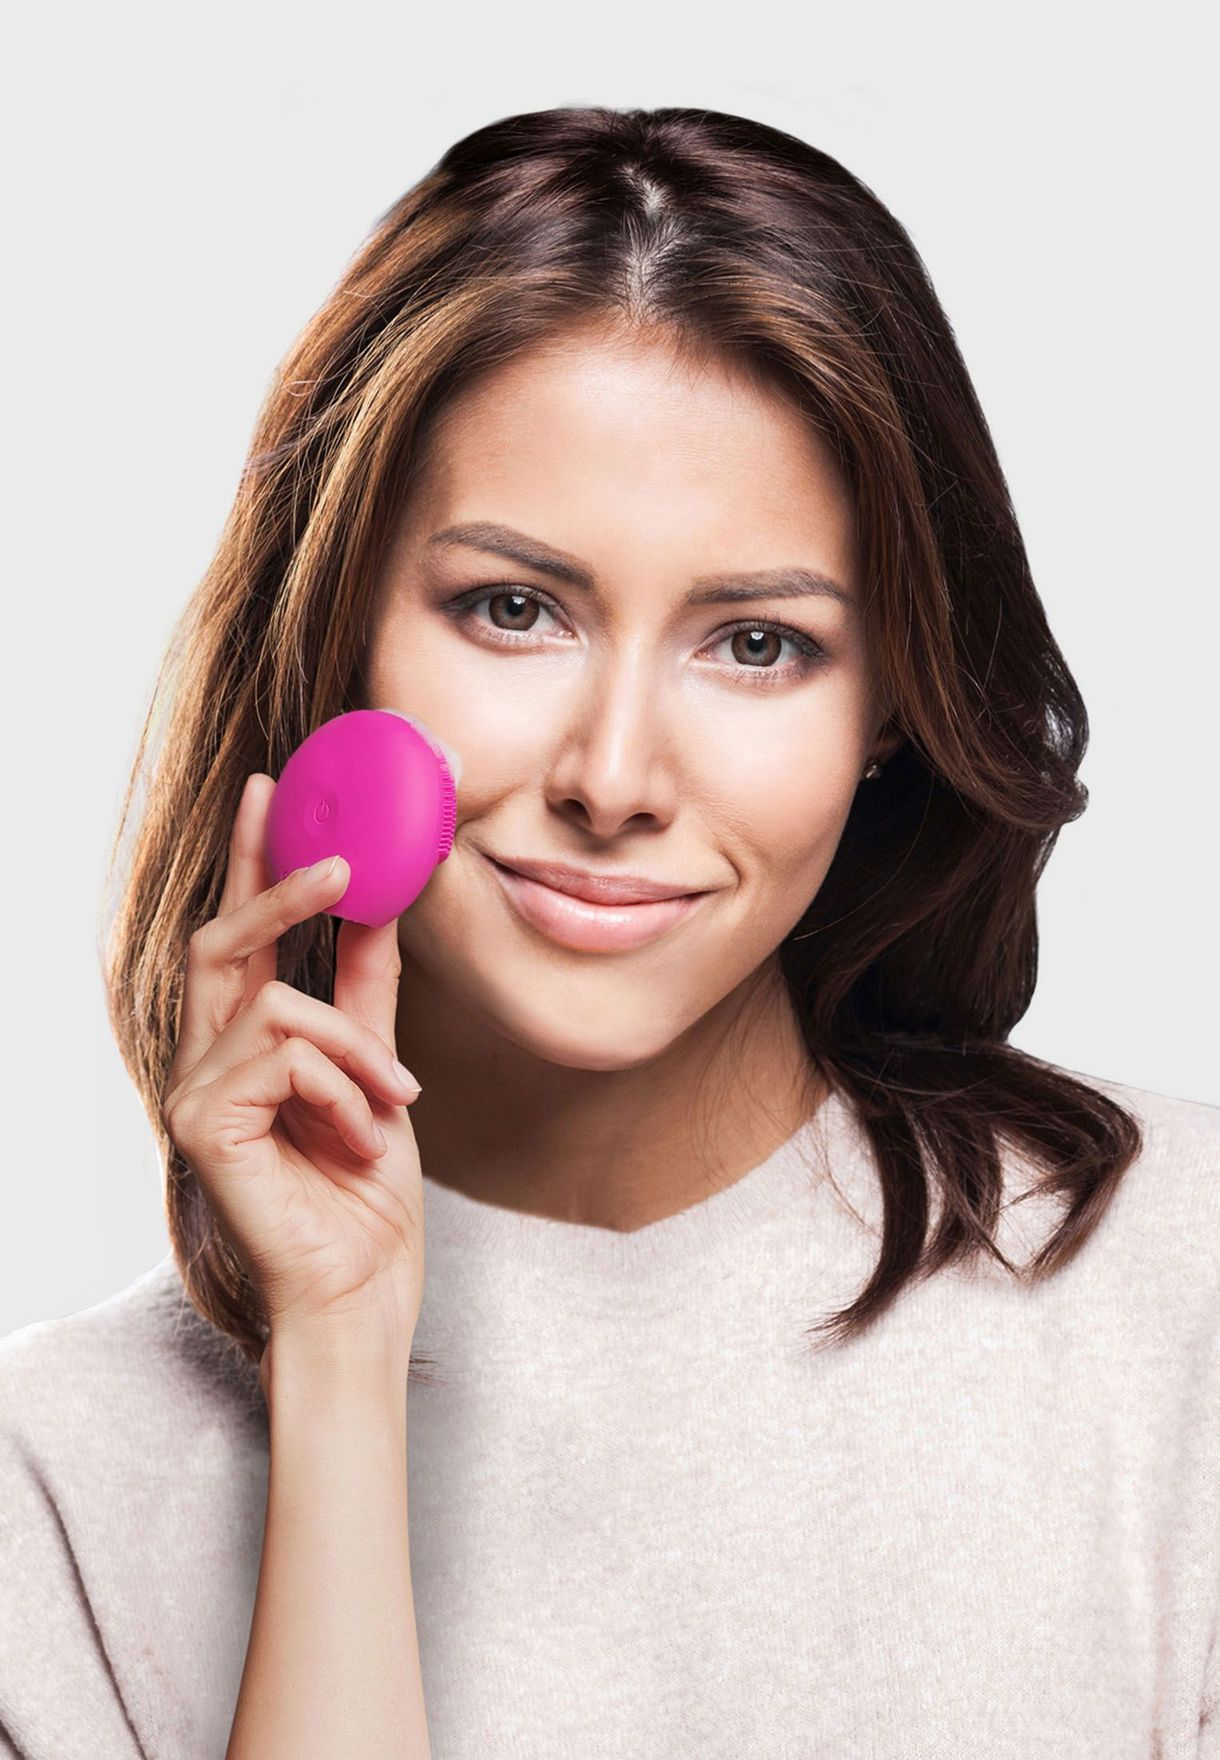 LUNA play plus Facial Cleansing Brush - Fuchsia